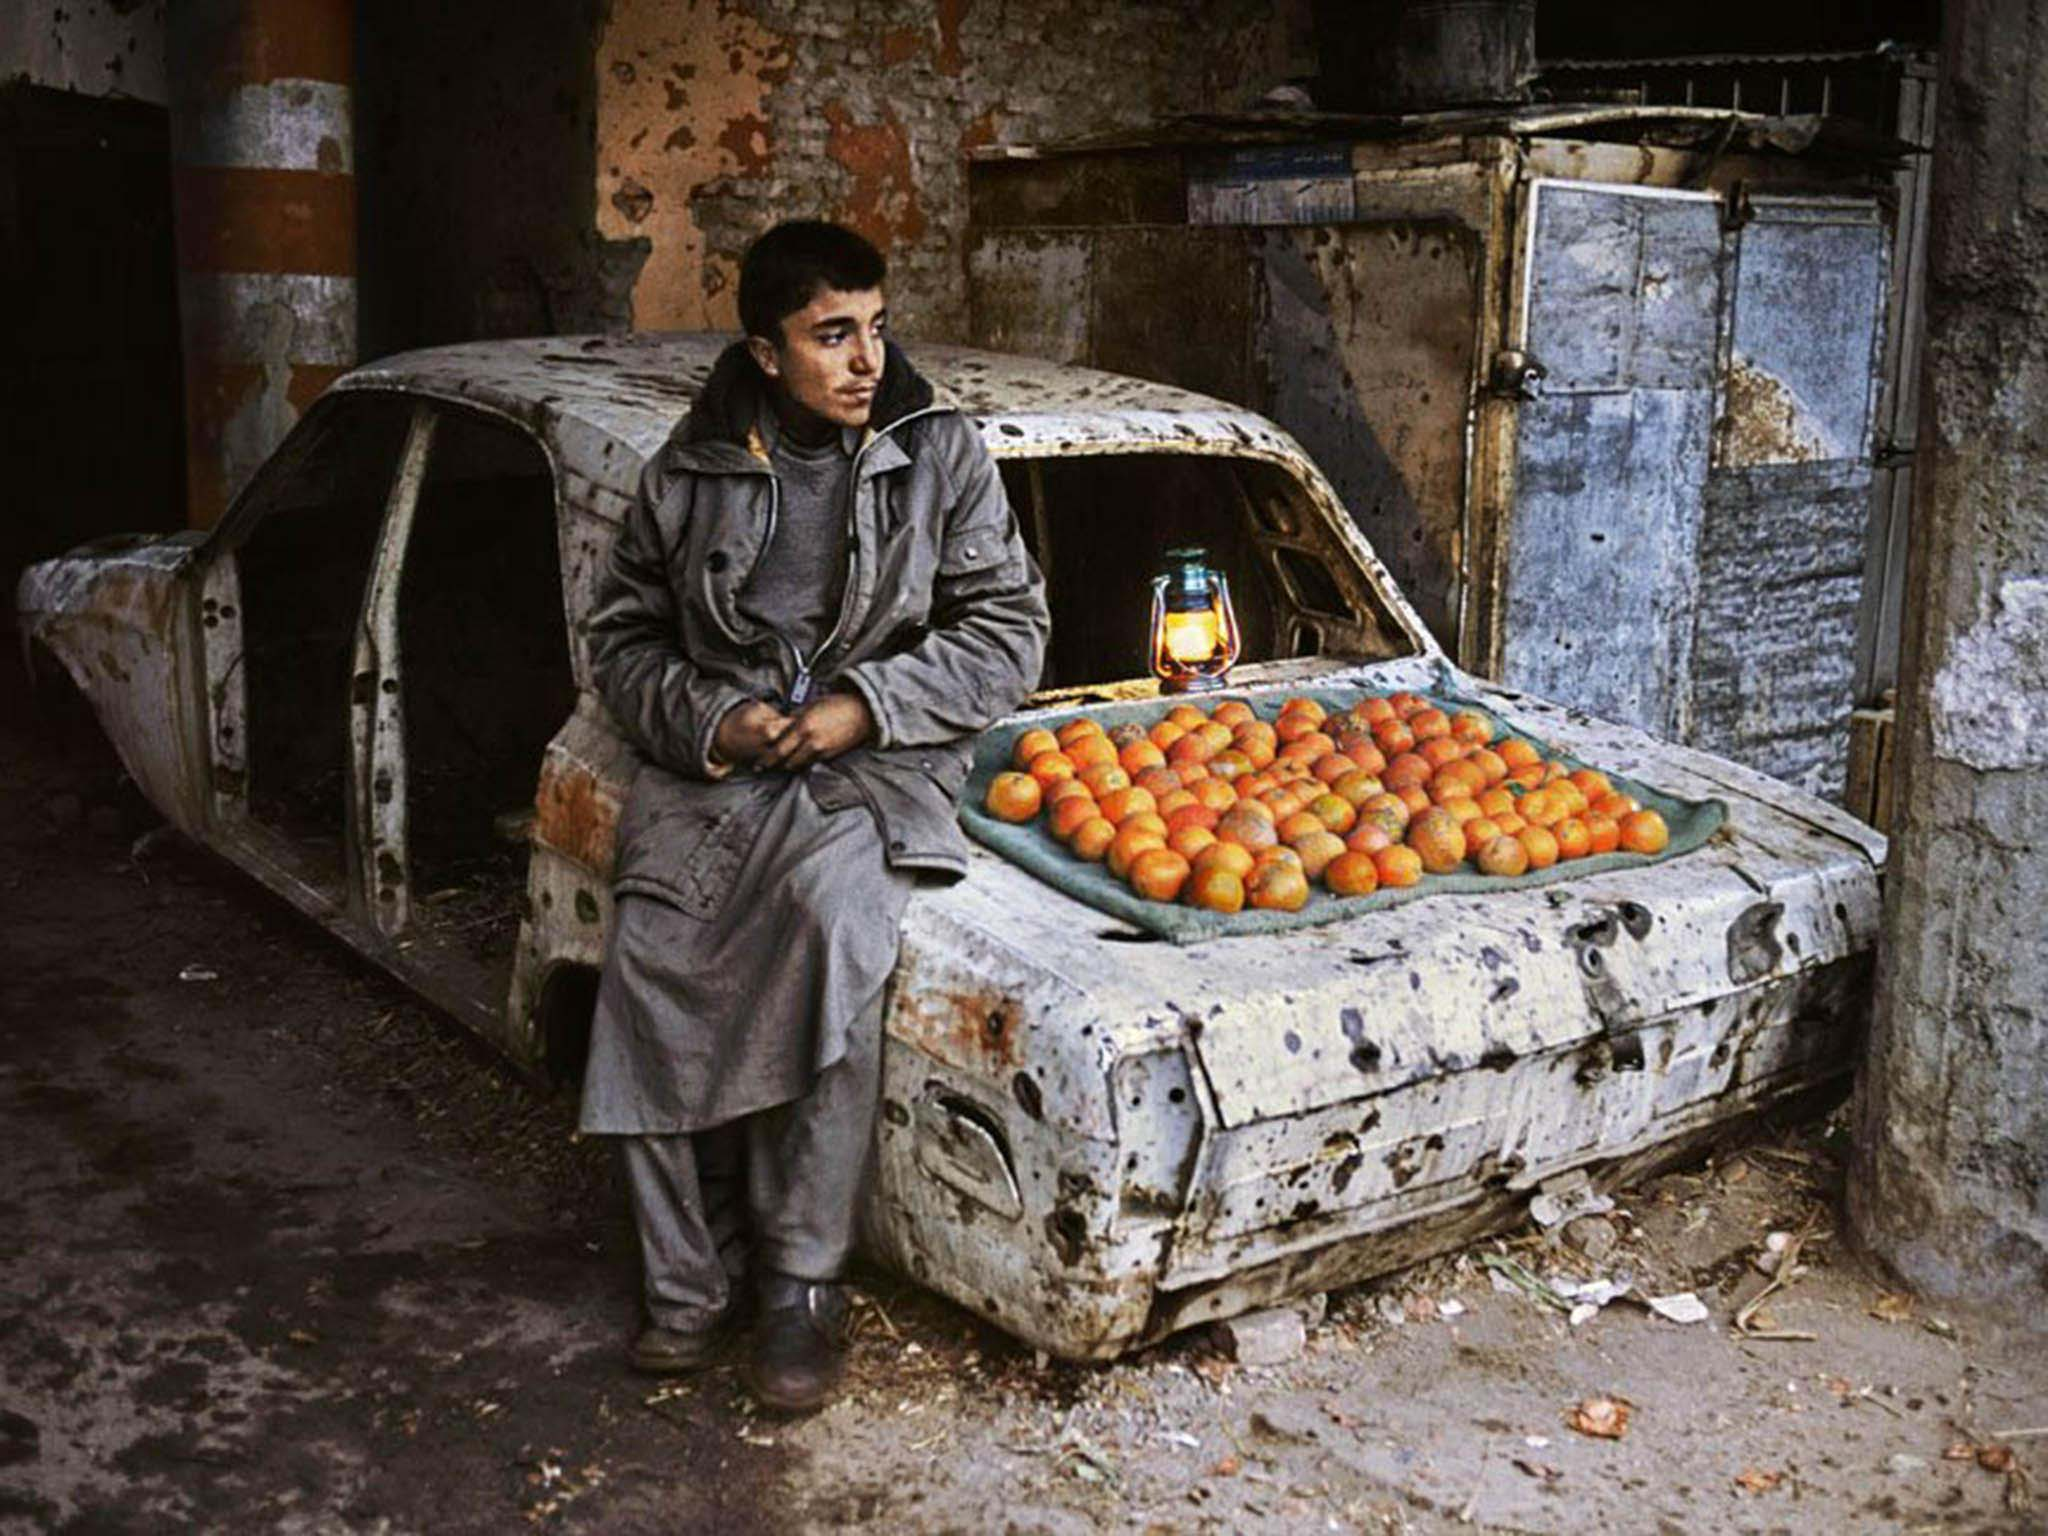 Afghanistan. © Steve McCurry